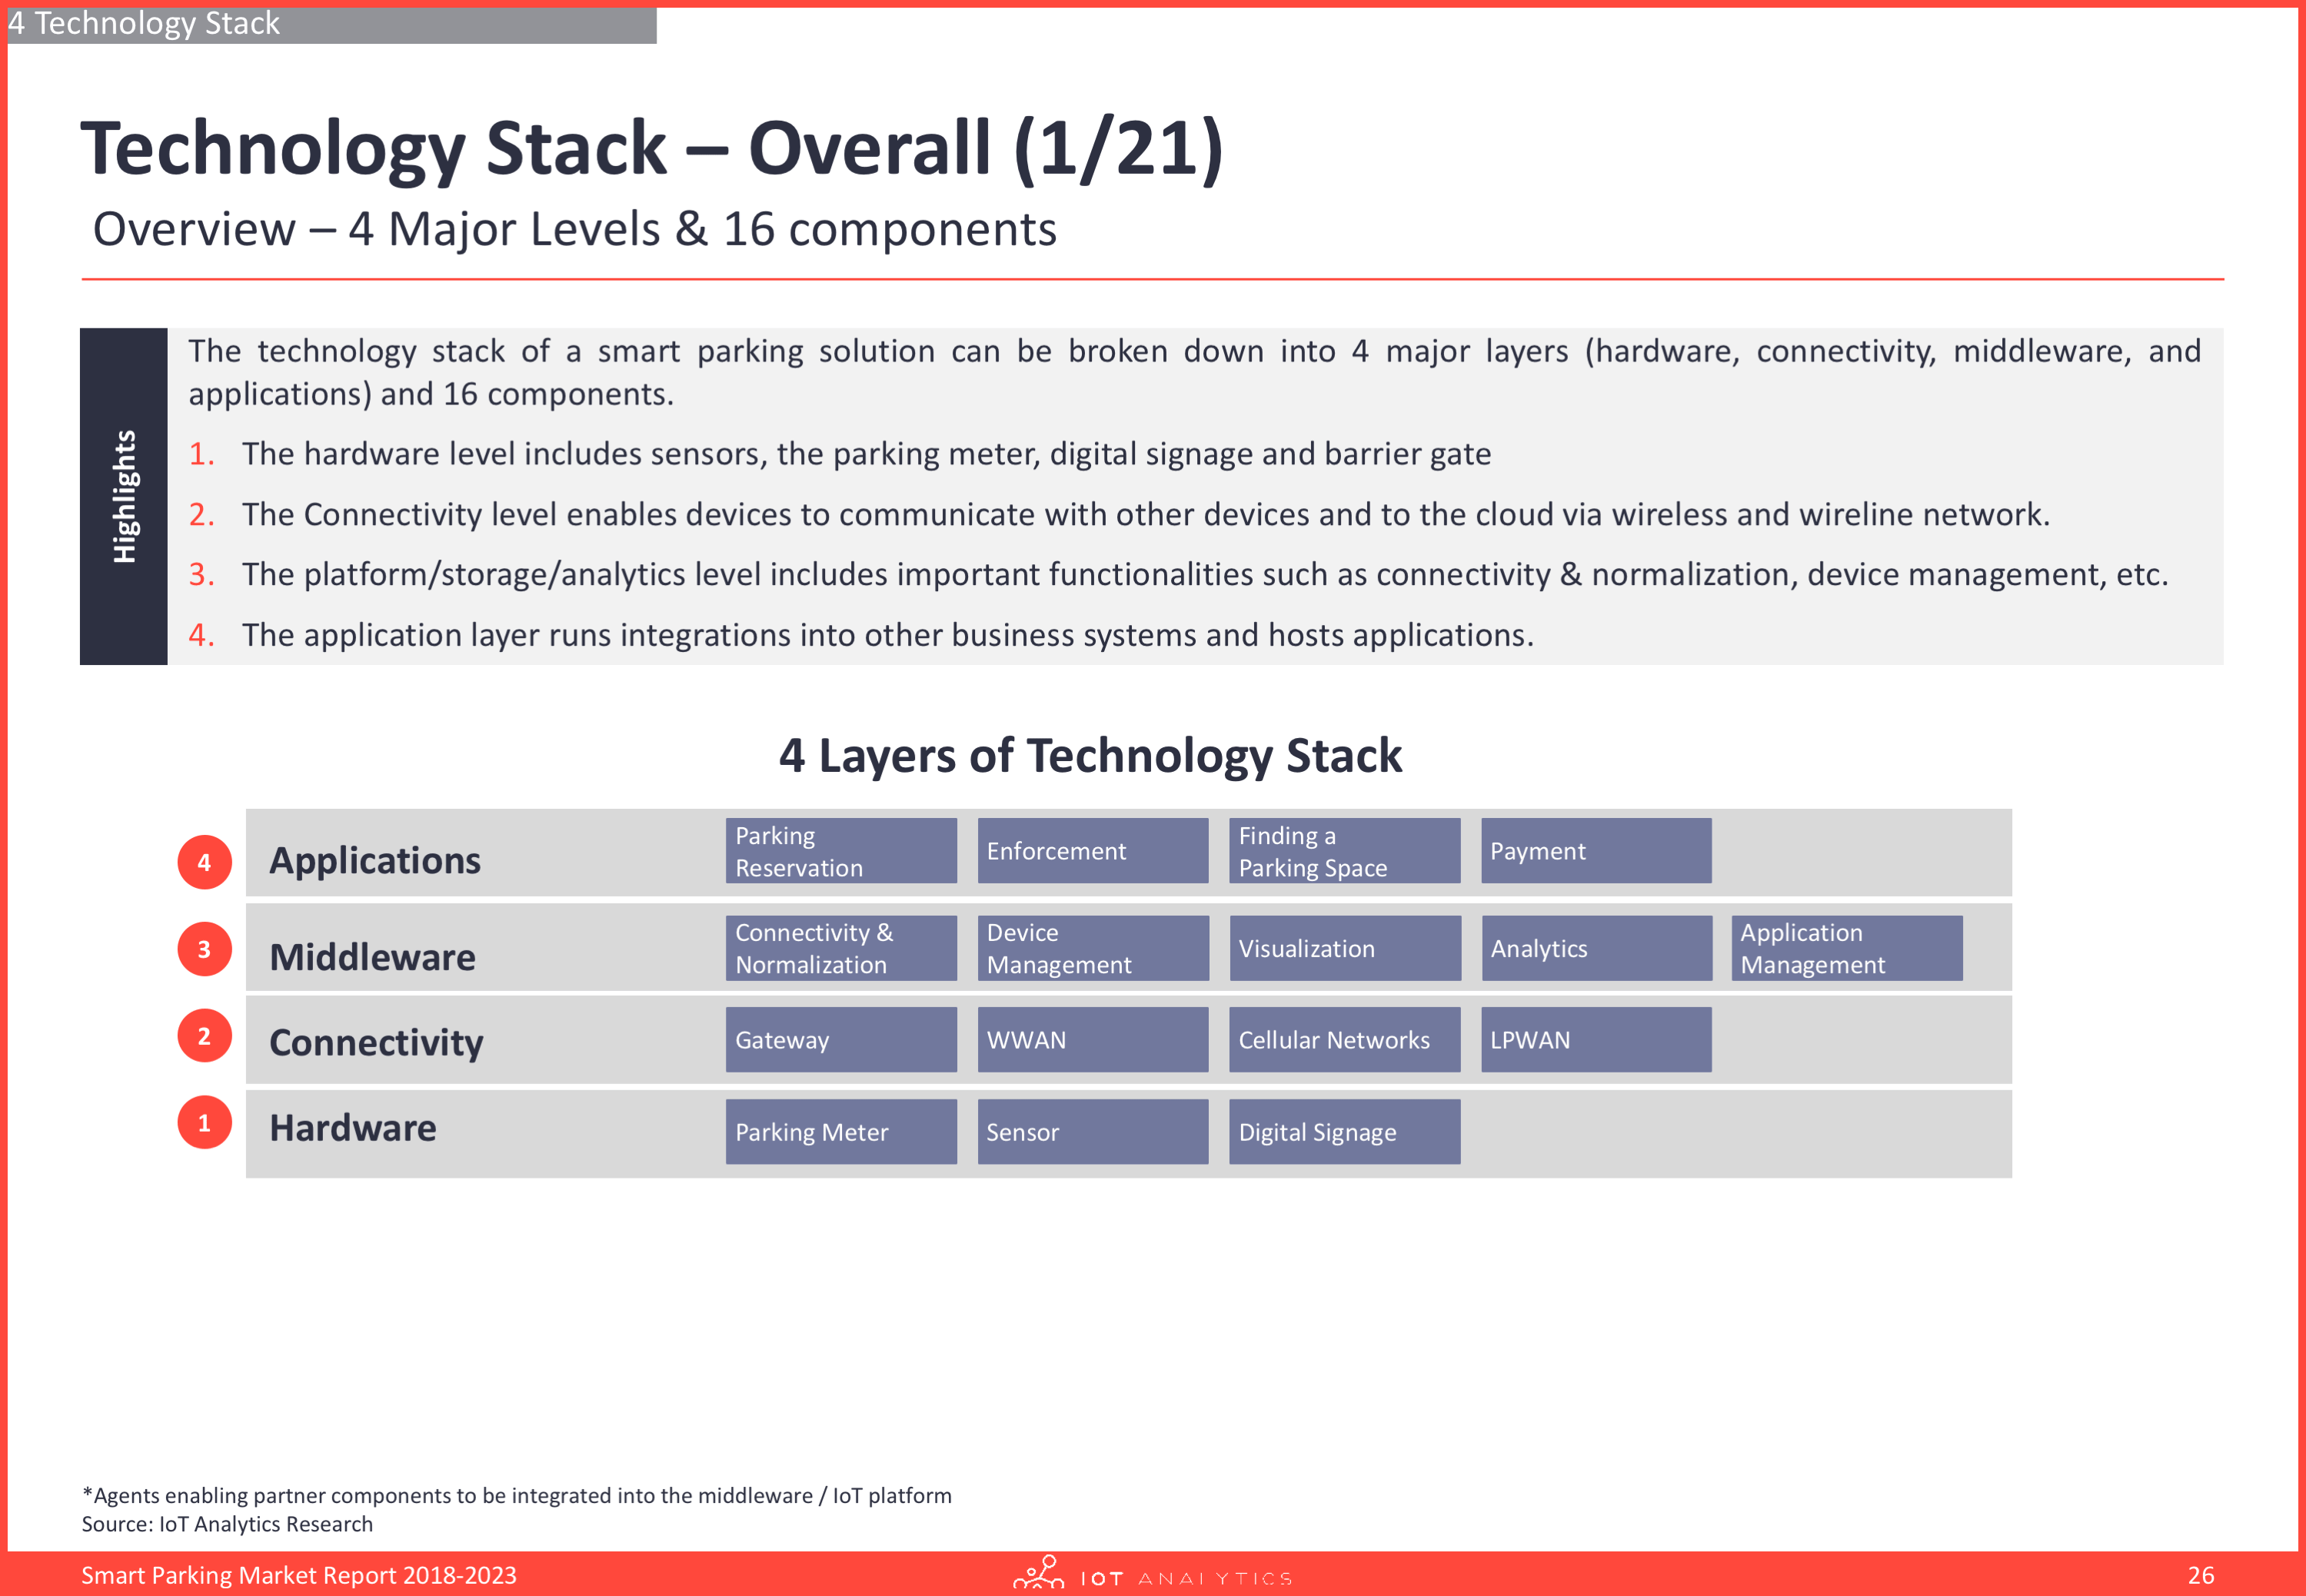 Smart parking report - technology stack overall